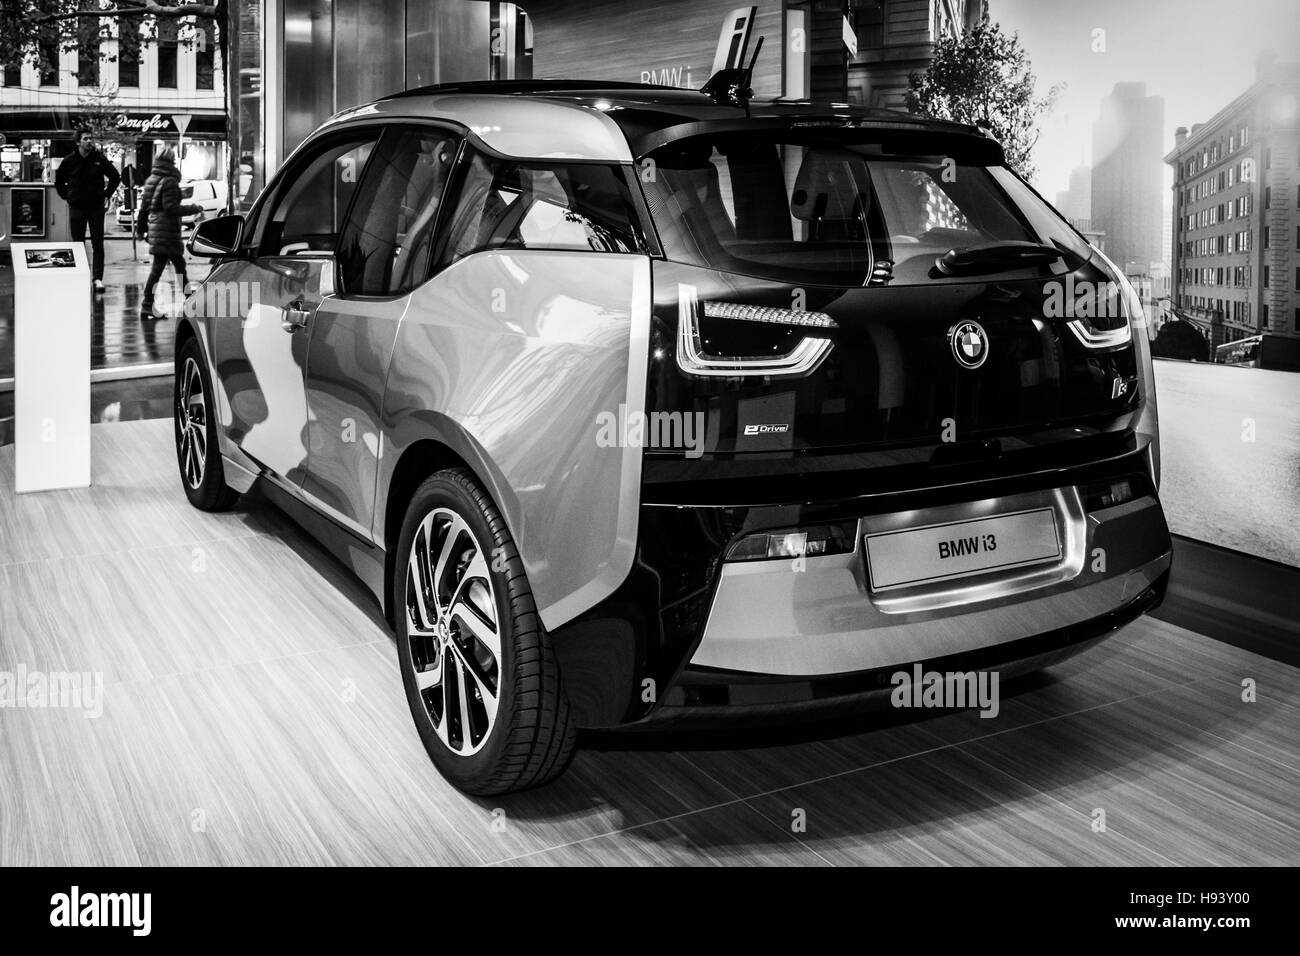 Showroom. The BMW i3 - Stock Image